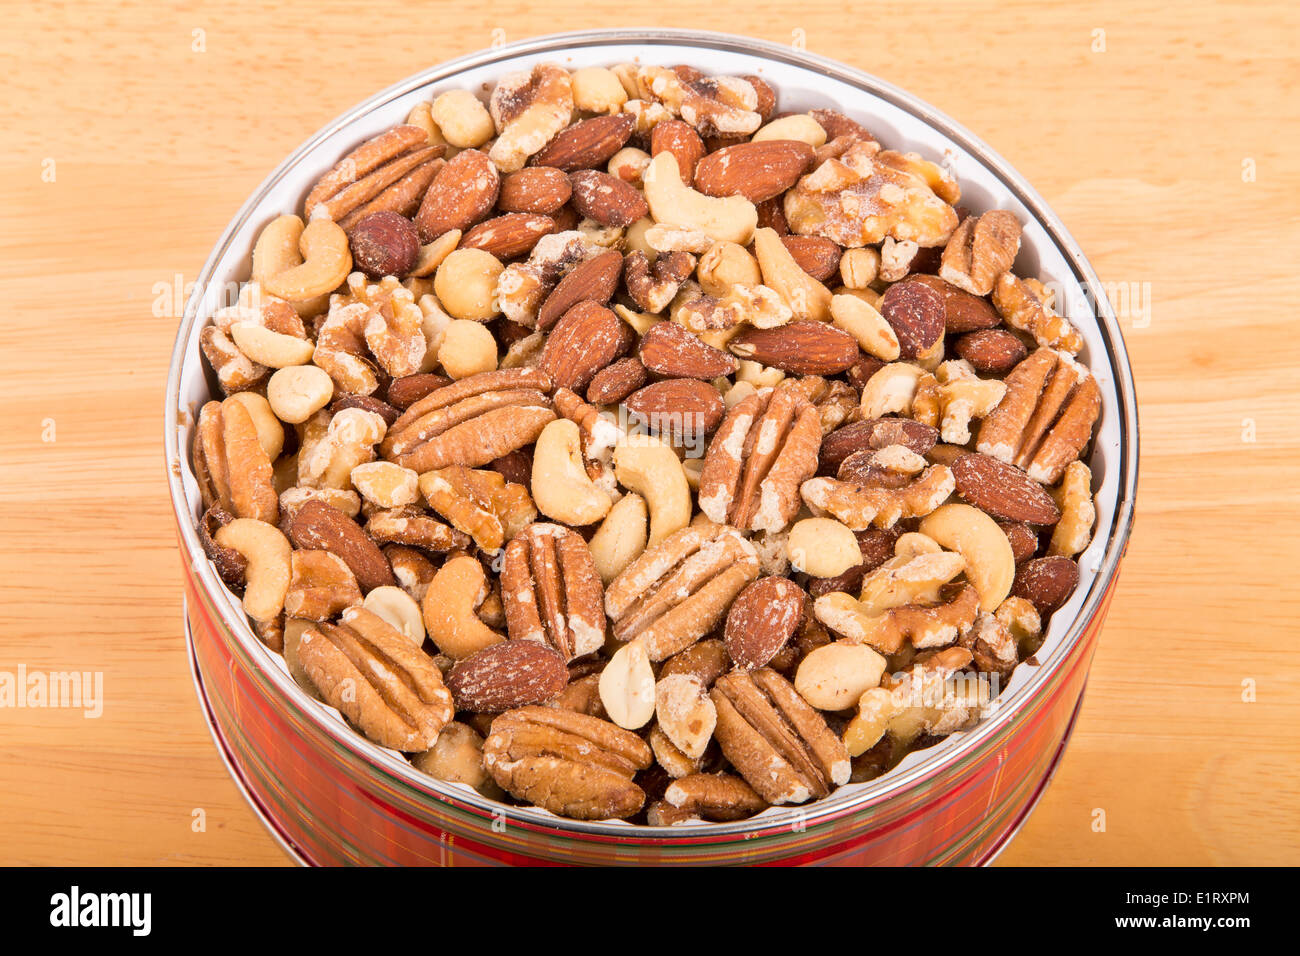 Deluxe mixed nuts in a round tin on a wood table - Stock Image